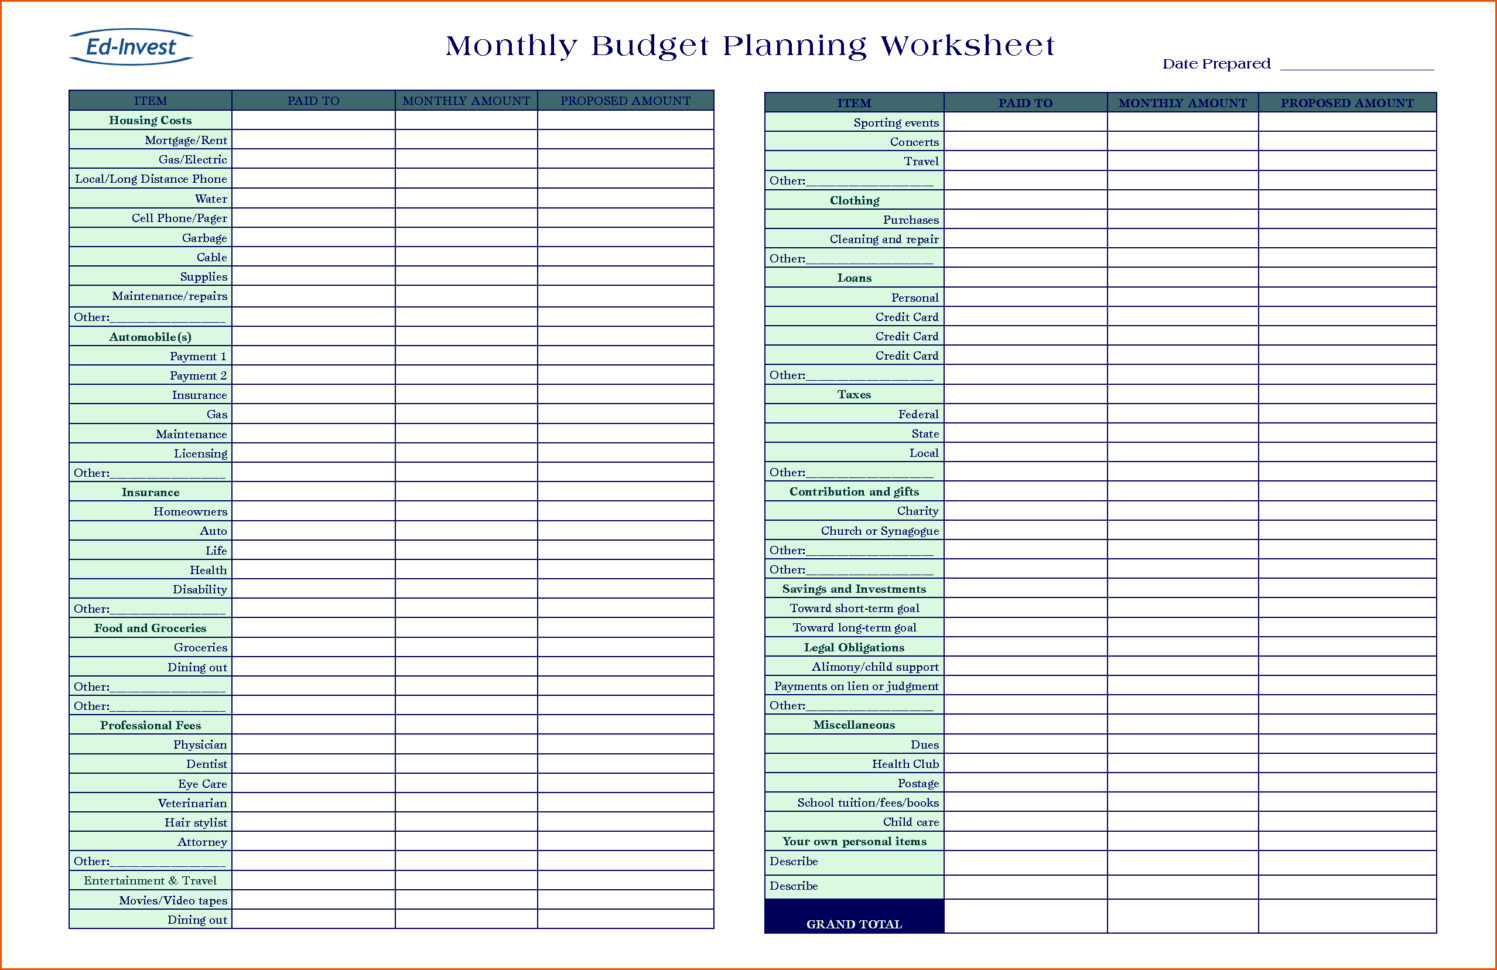 Free Budget Planner Spreadsheet Inside Budget Planning Spreadsheet Invoice Template Business Excel Sheet